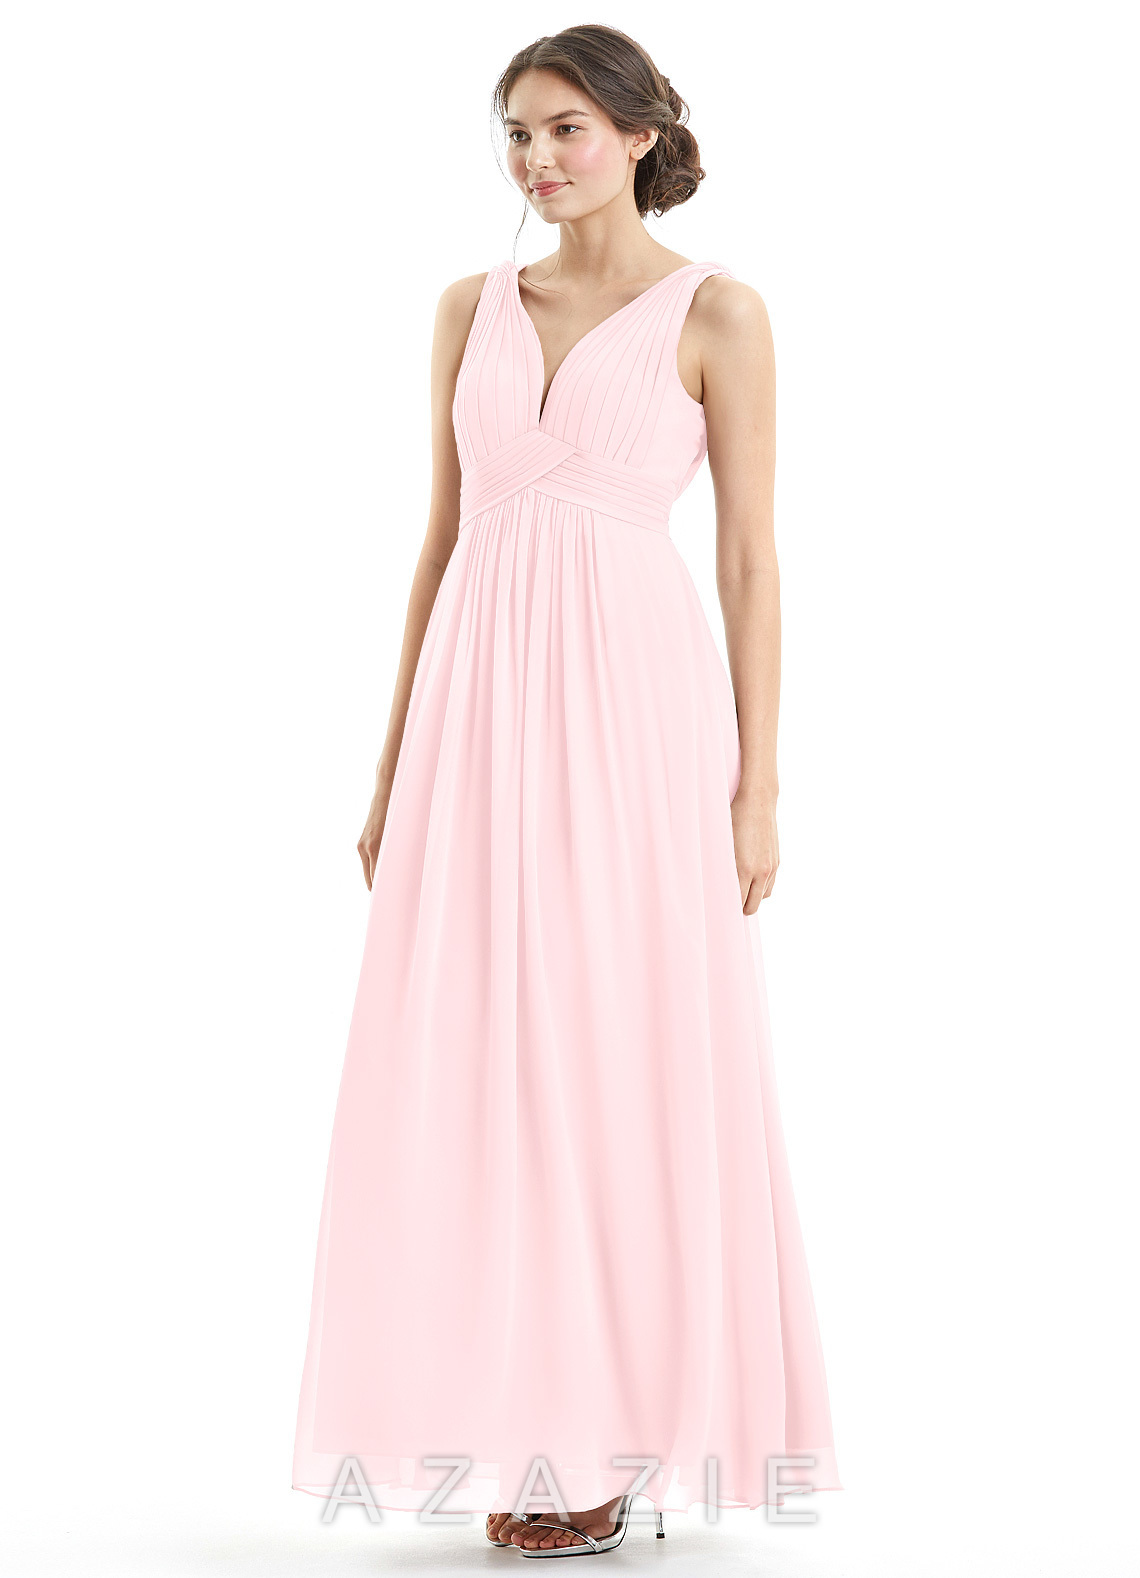 dc6b124eab50 Azazie Hillary Bridesmaid Dress - Blushing Pink | Azazie